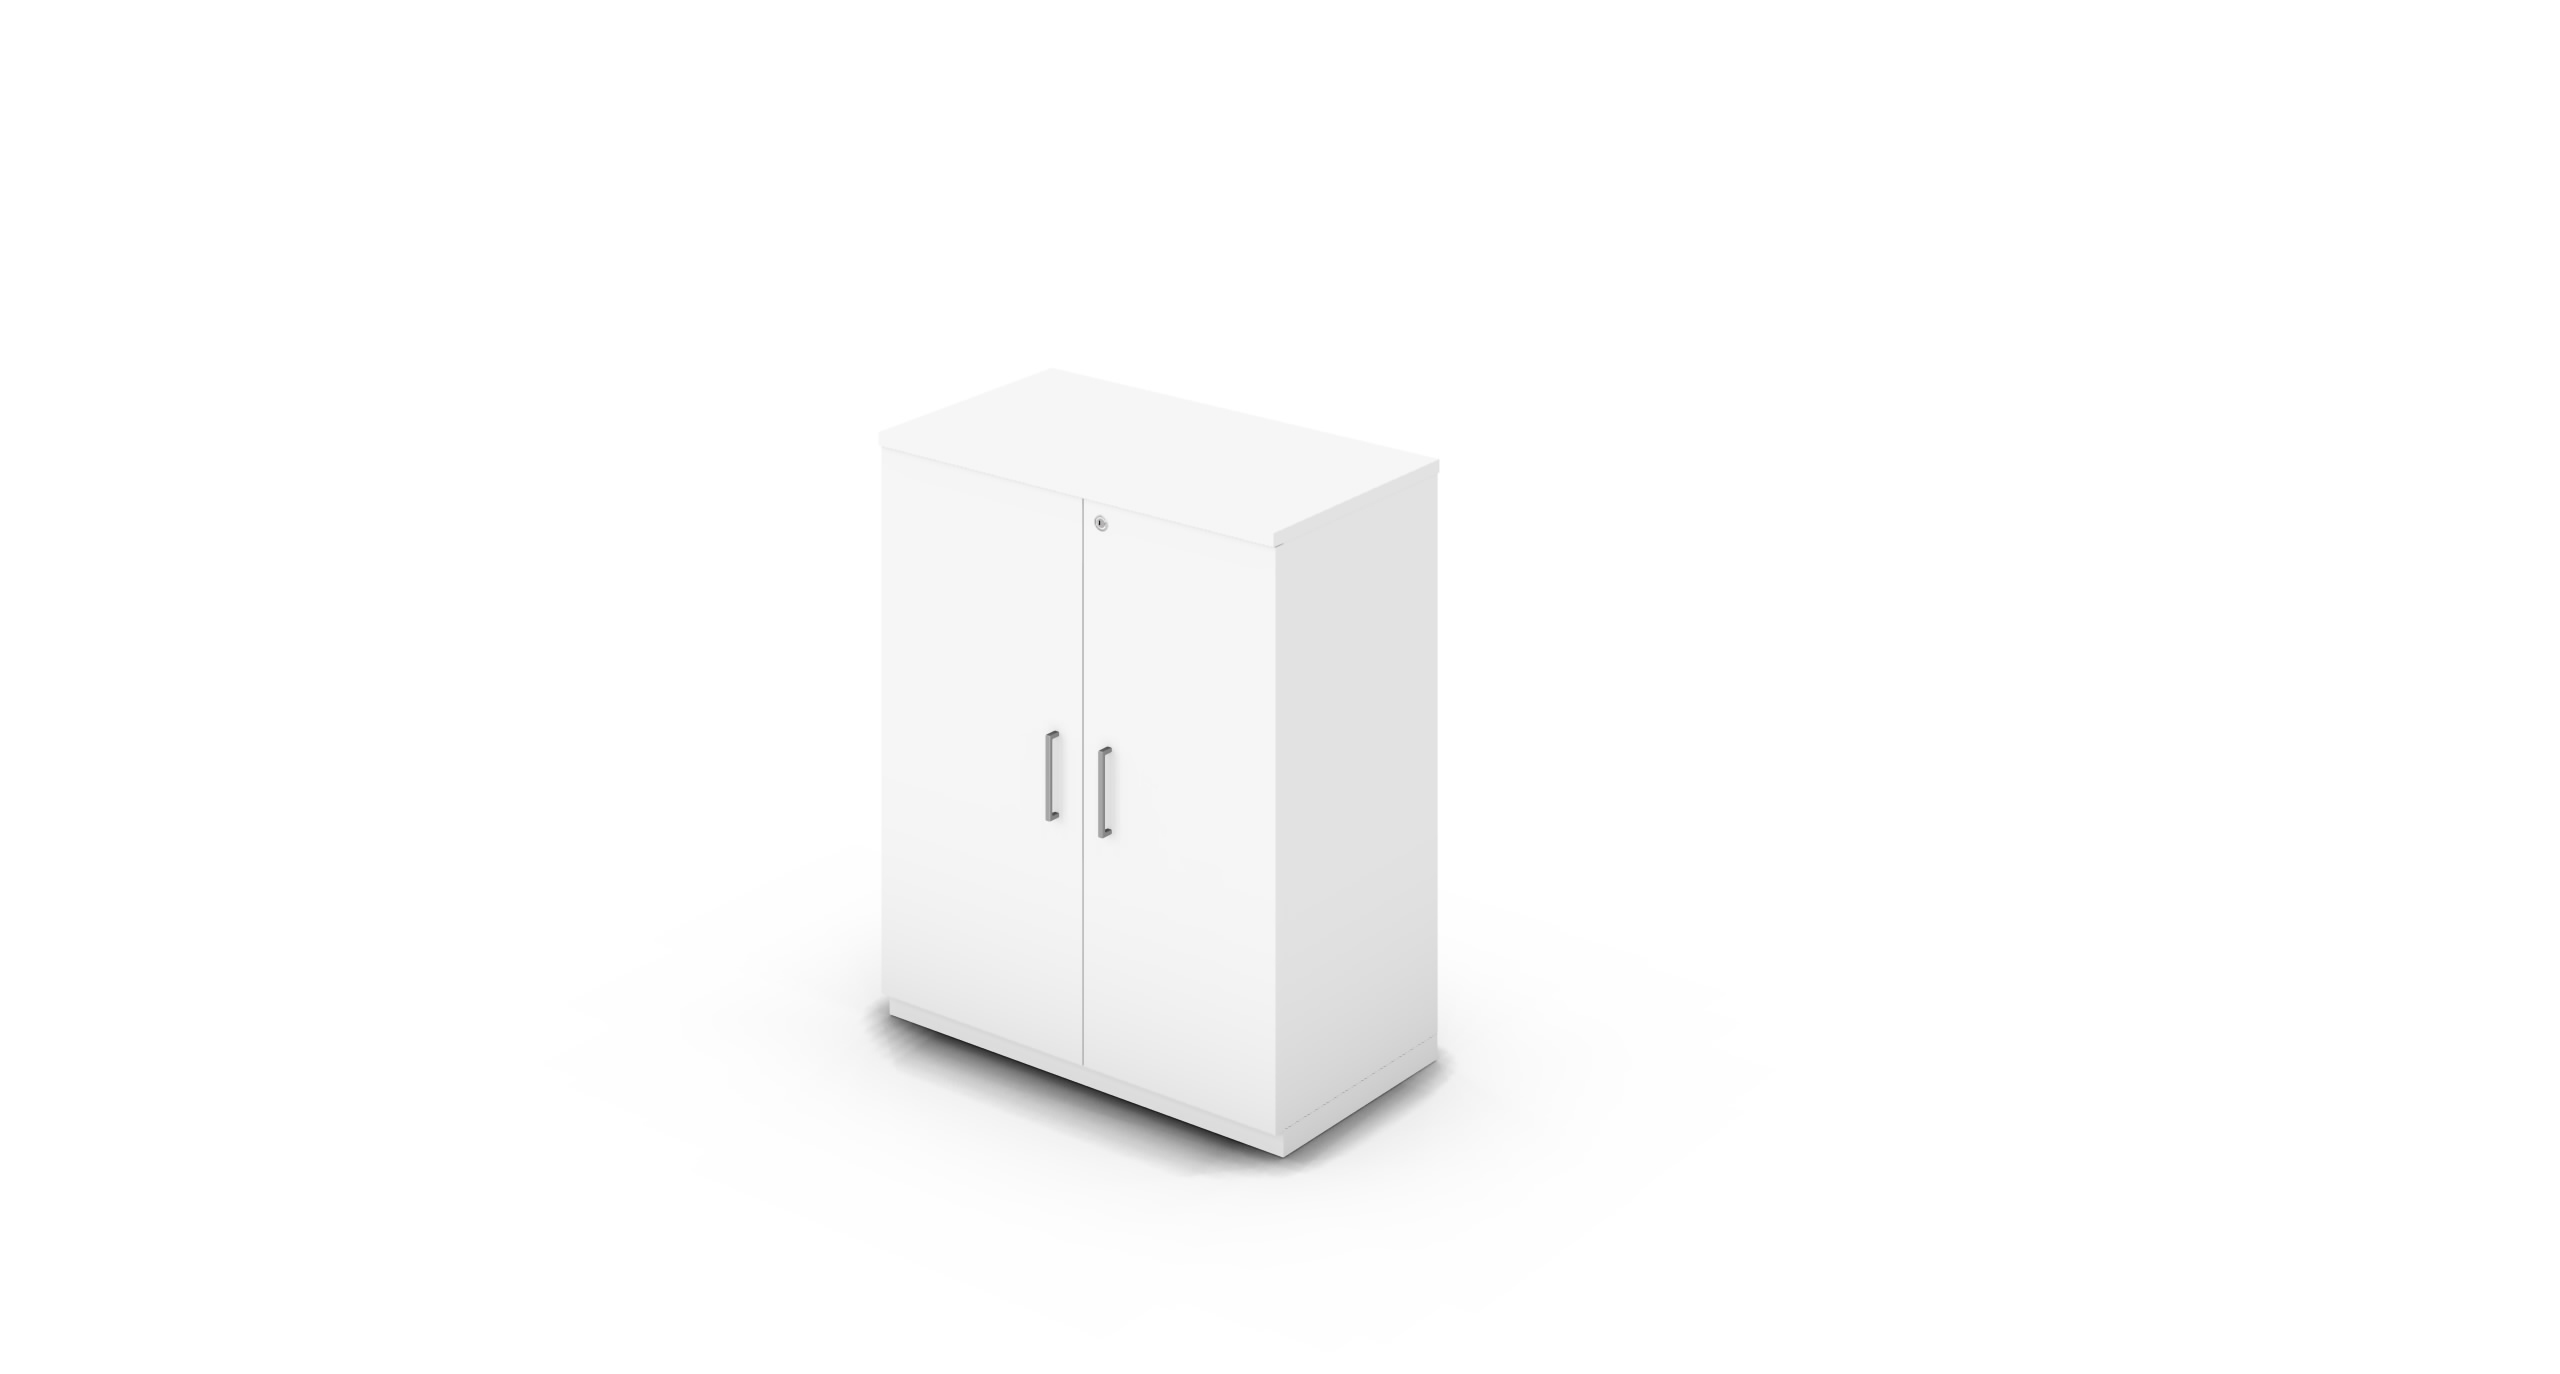 Cabinet_800x450x1125_HD_White_Bar_Square_WithCylinder